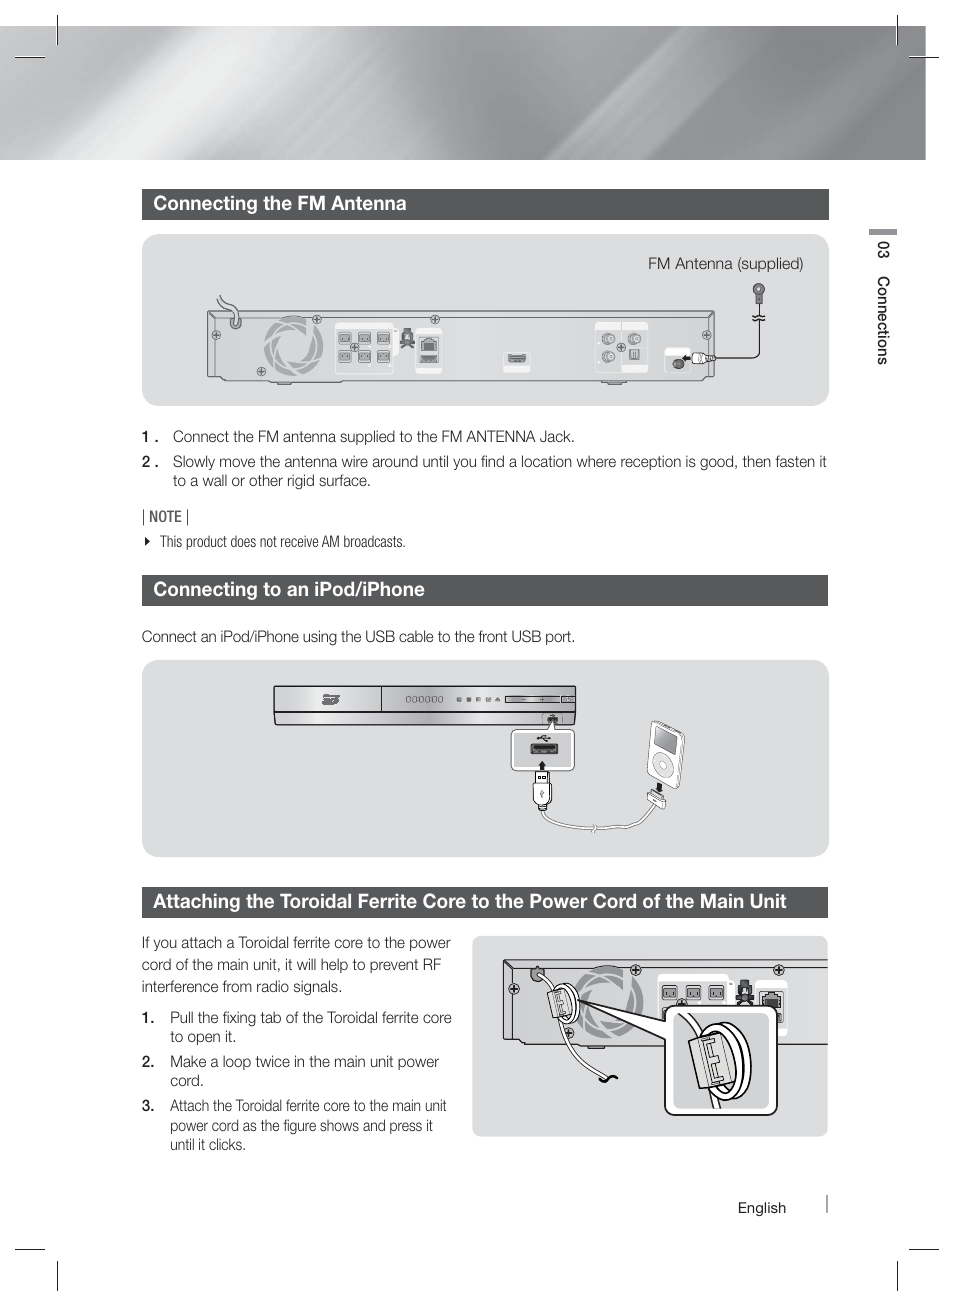 Connecting The Fm Antenna To An Ipod Iphone 03 Usb Connector Wiring Connection Connections Samsung Ht Em45 Za User Manual Page 17 59